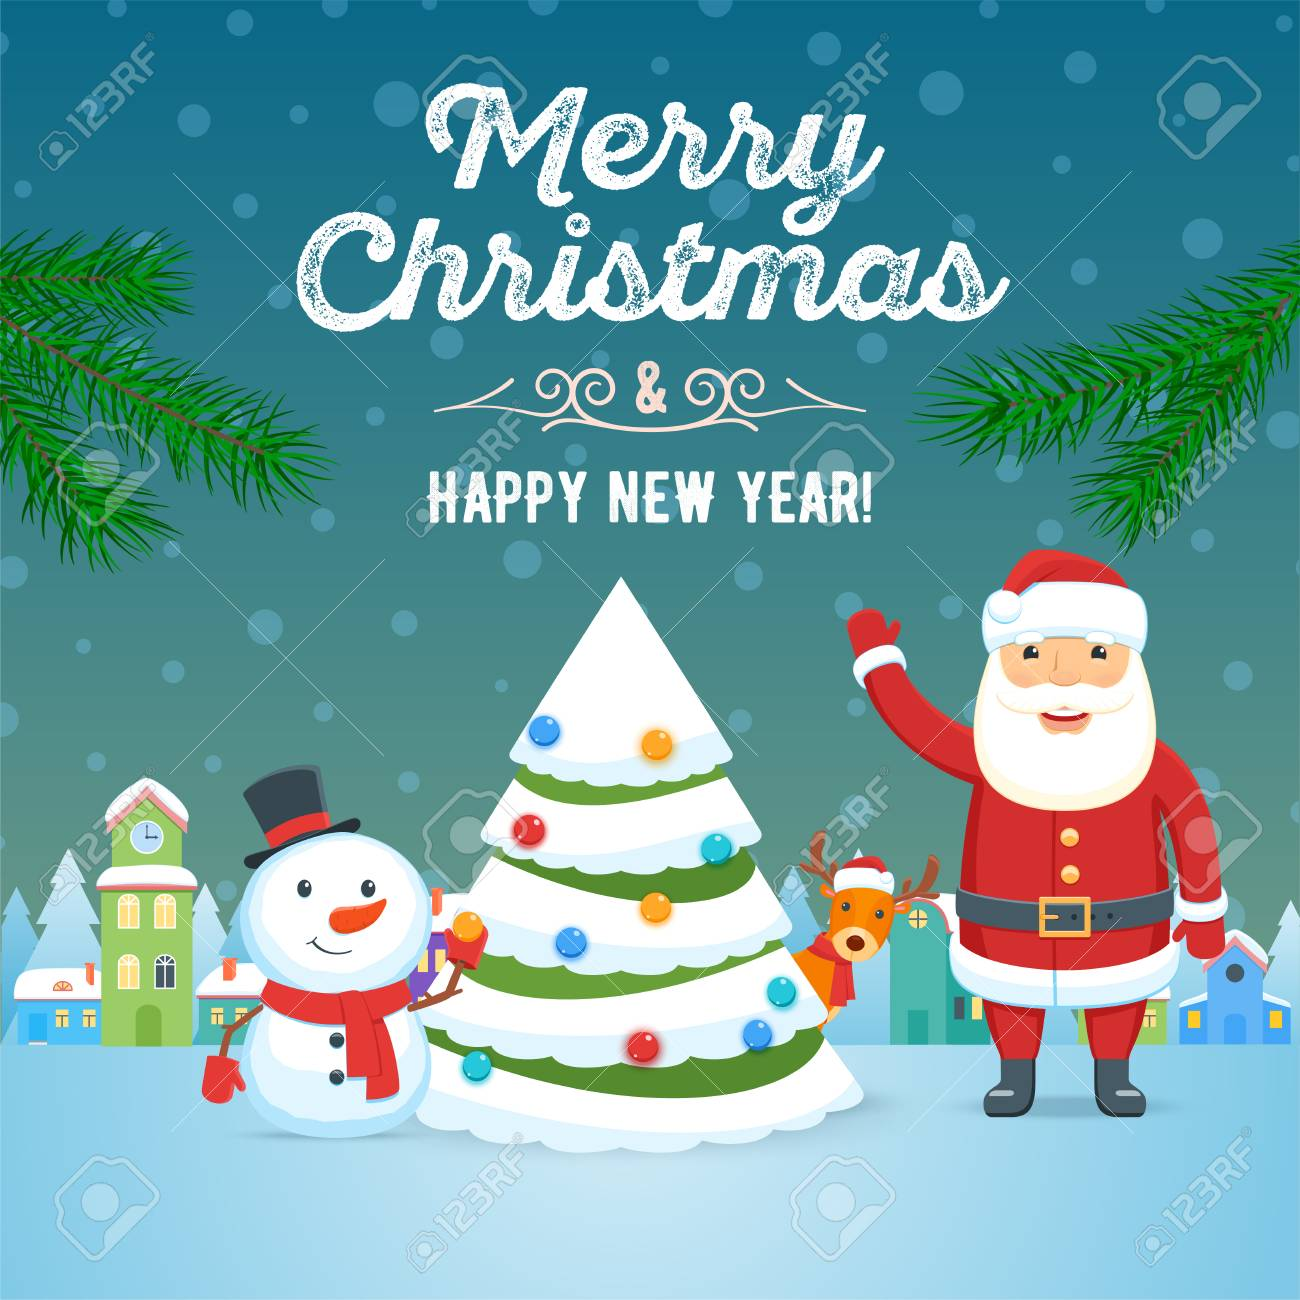 Santa Claus Snowman And Christmas Tree On Town Background Christmas Royalty Free Cliparts Vectors And Stock Illustration Image 110269572